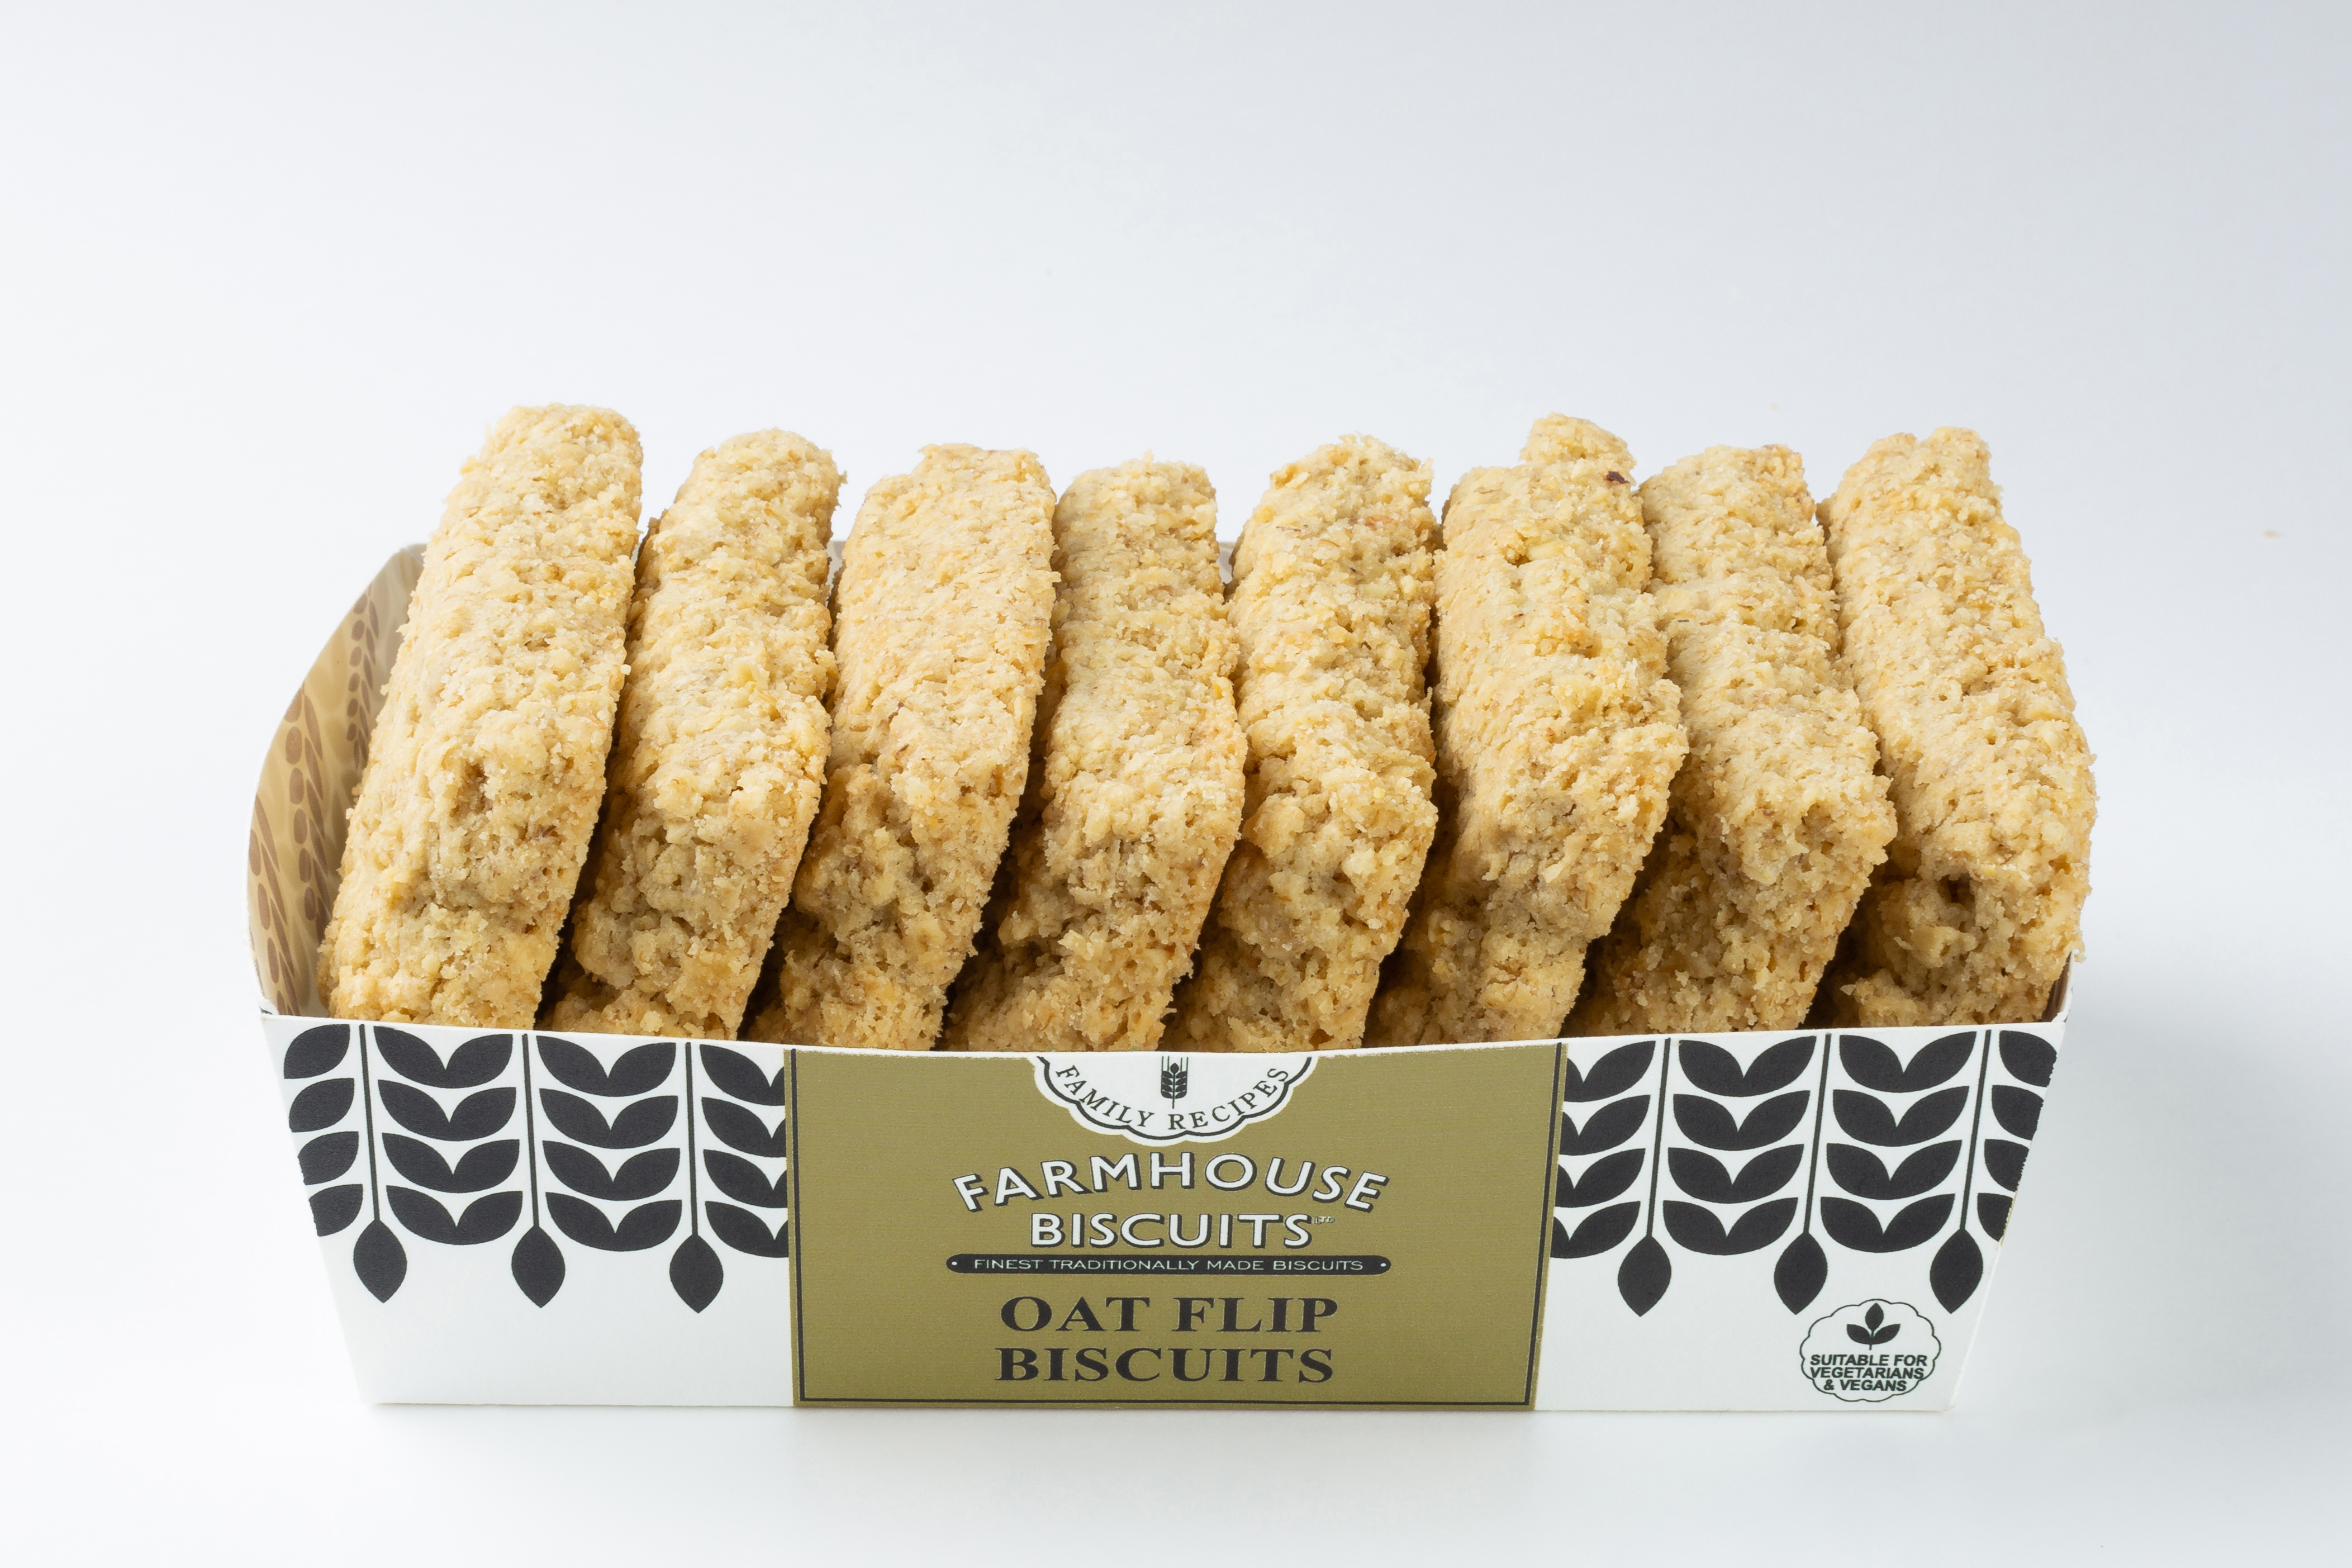 Farmhouse Biscuits Flips 200g The Cake Man